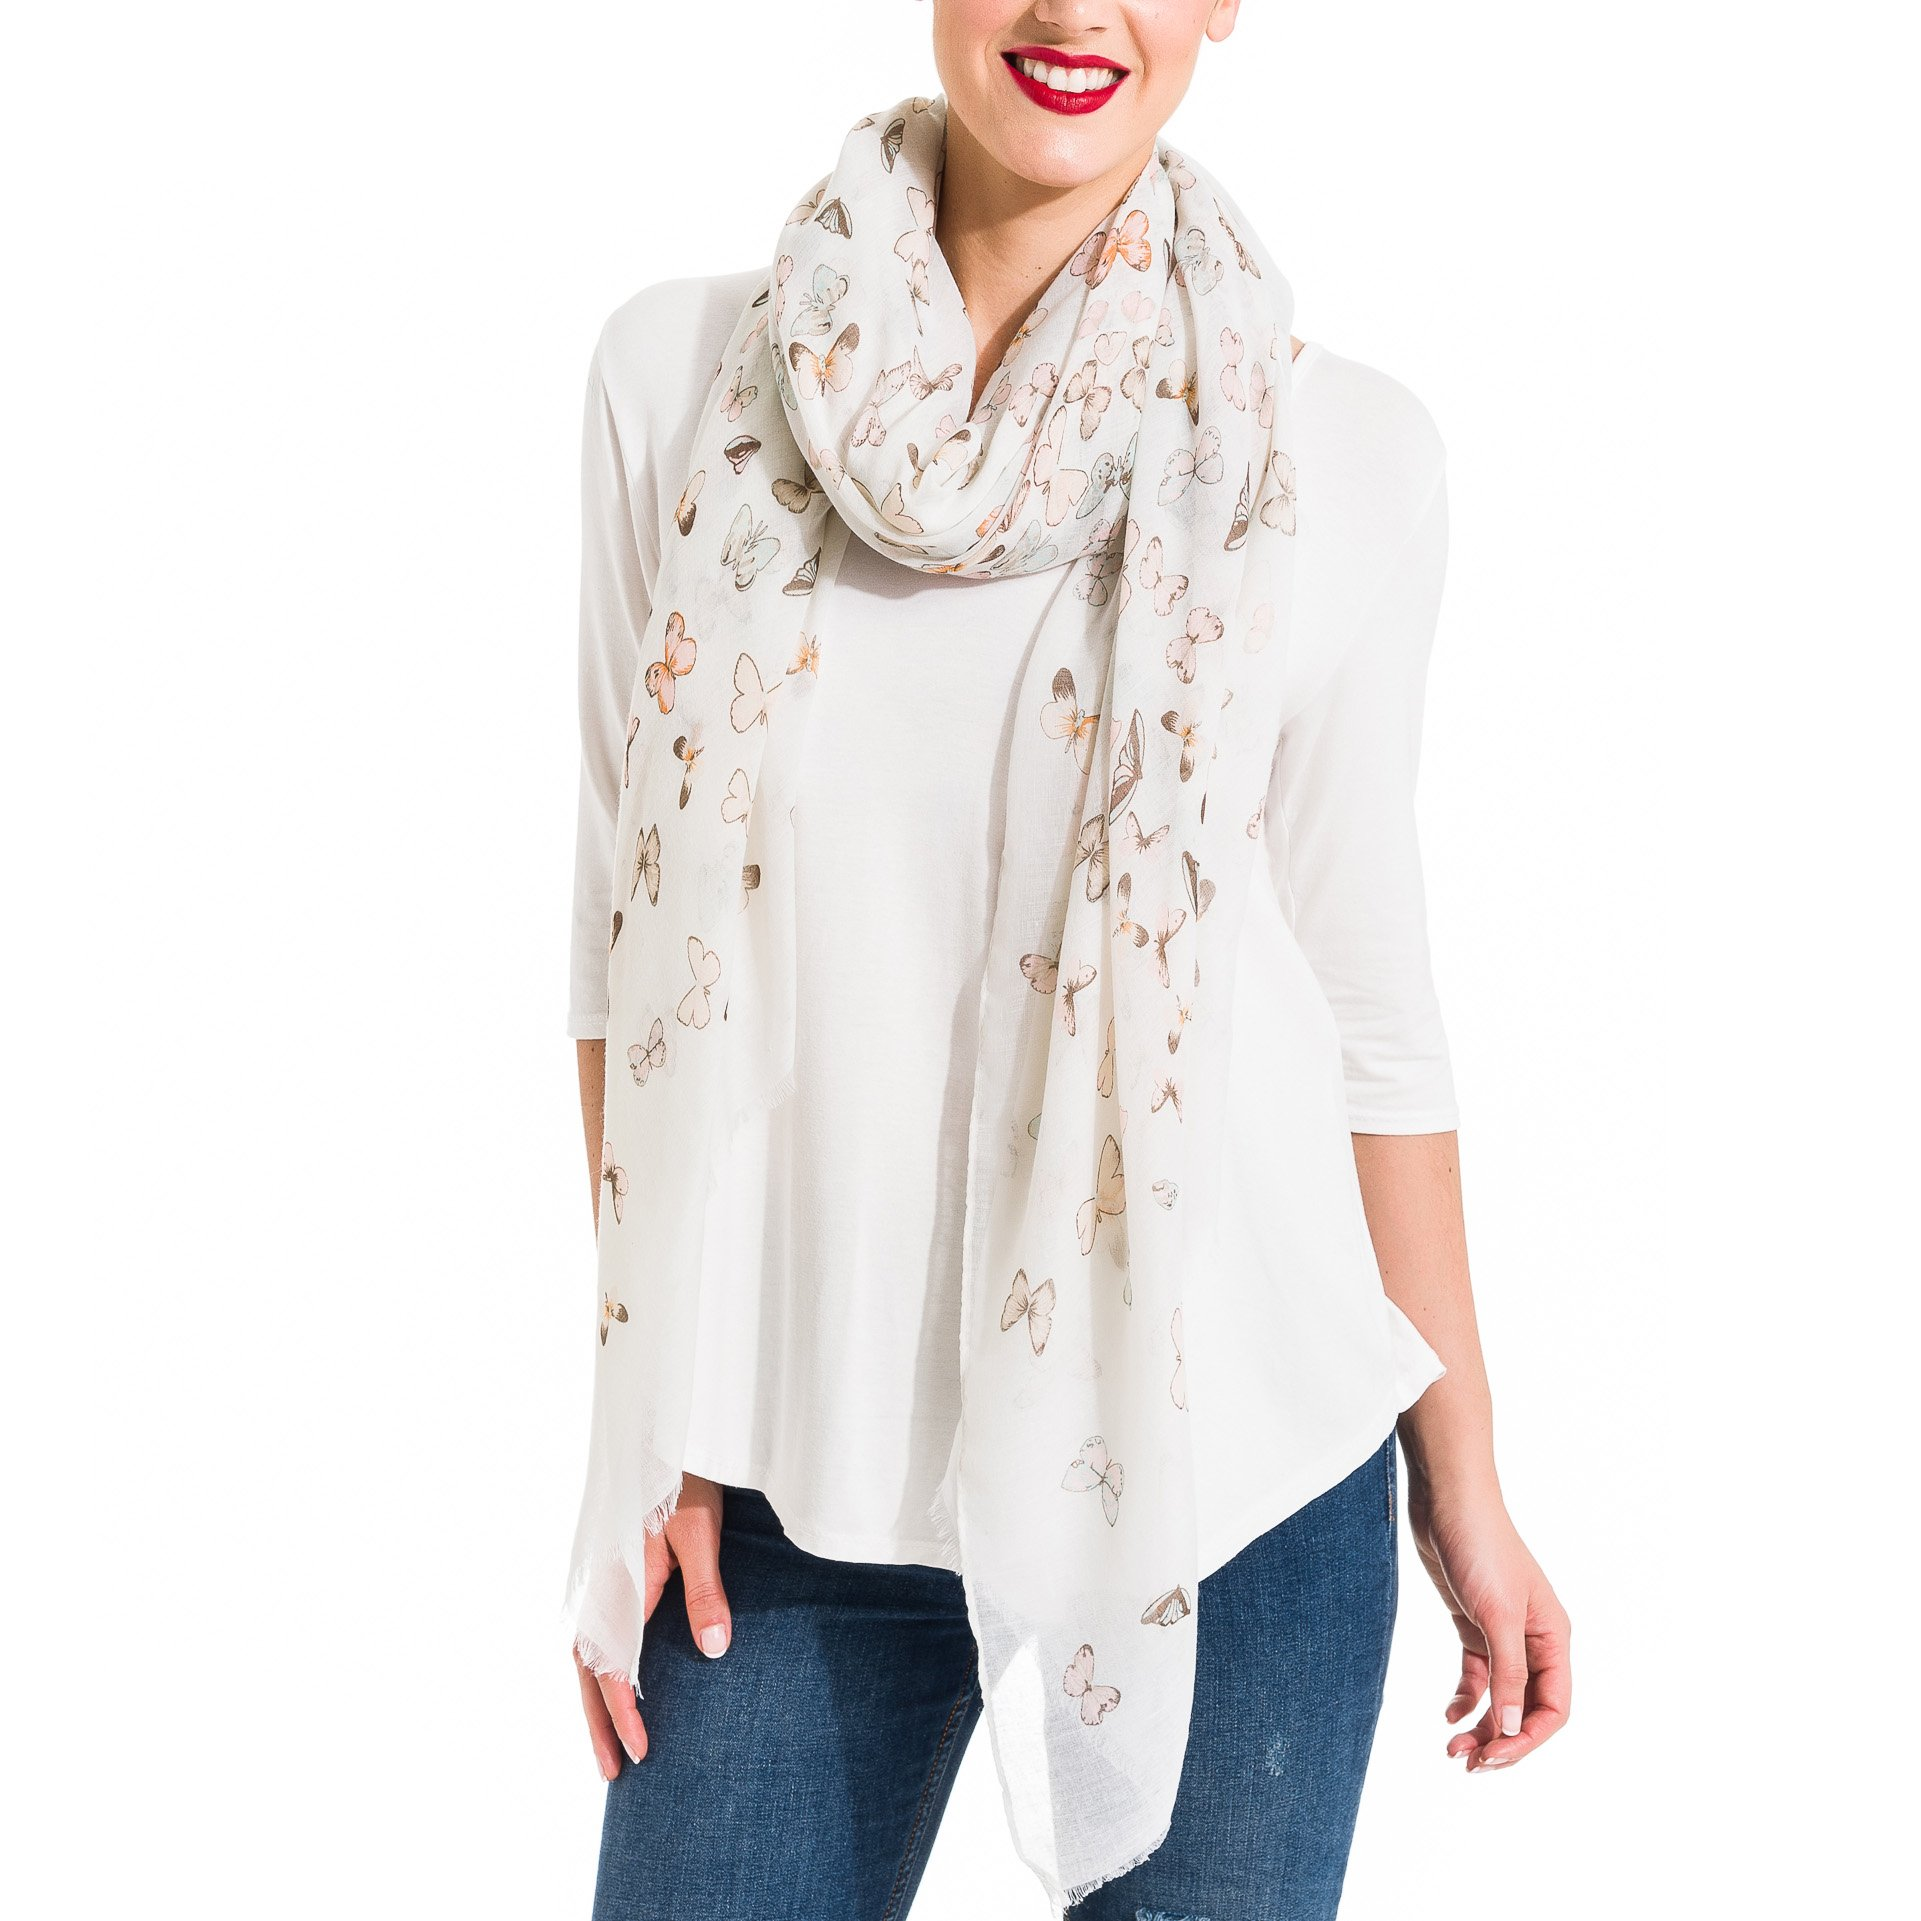 Scarf for Women Lightweight Butterfly Fashion Fall Winter Scarves Shawl Wraps by Melifluos (SS23)